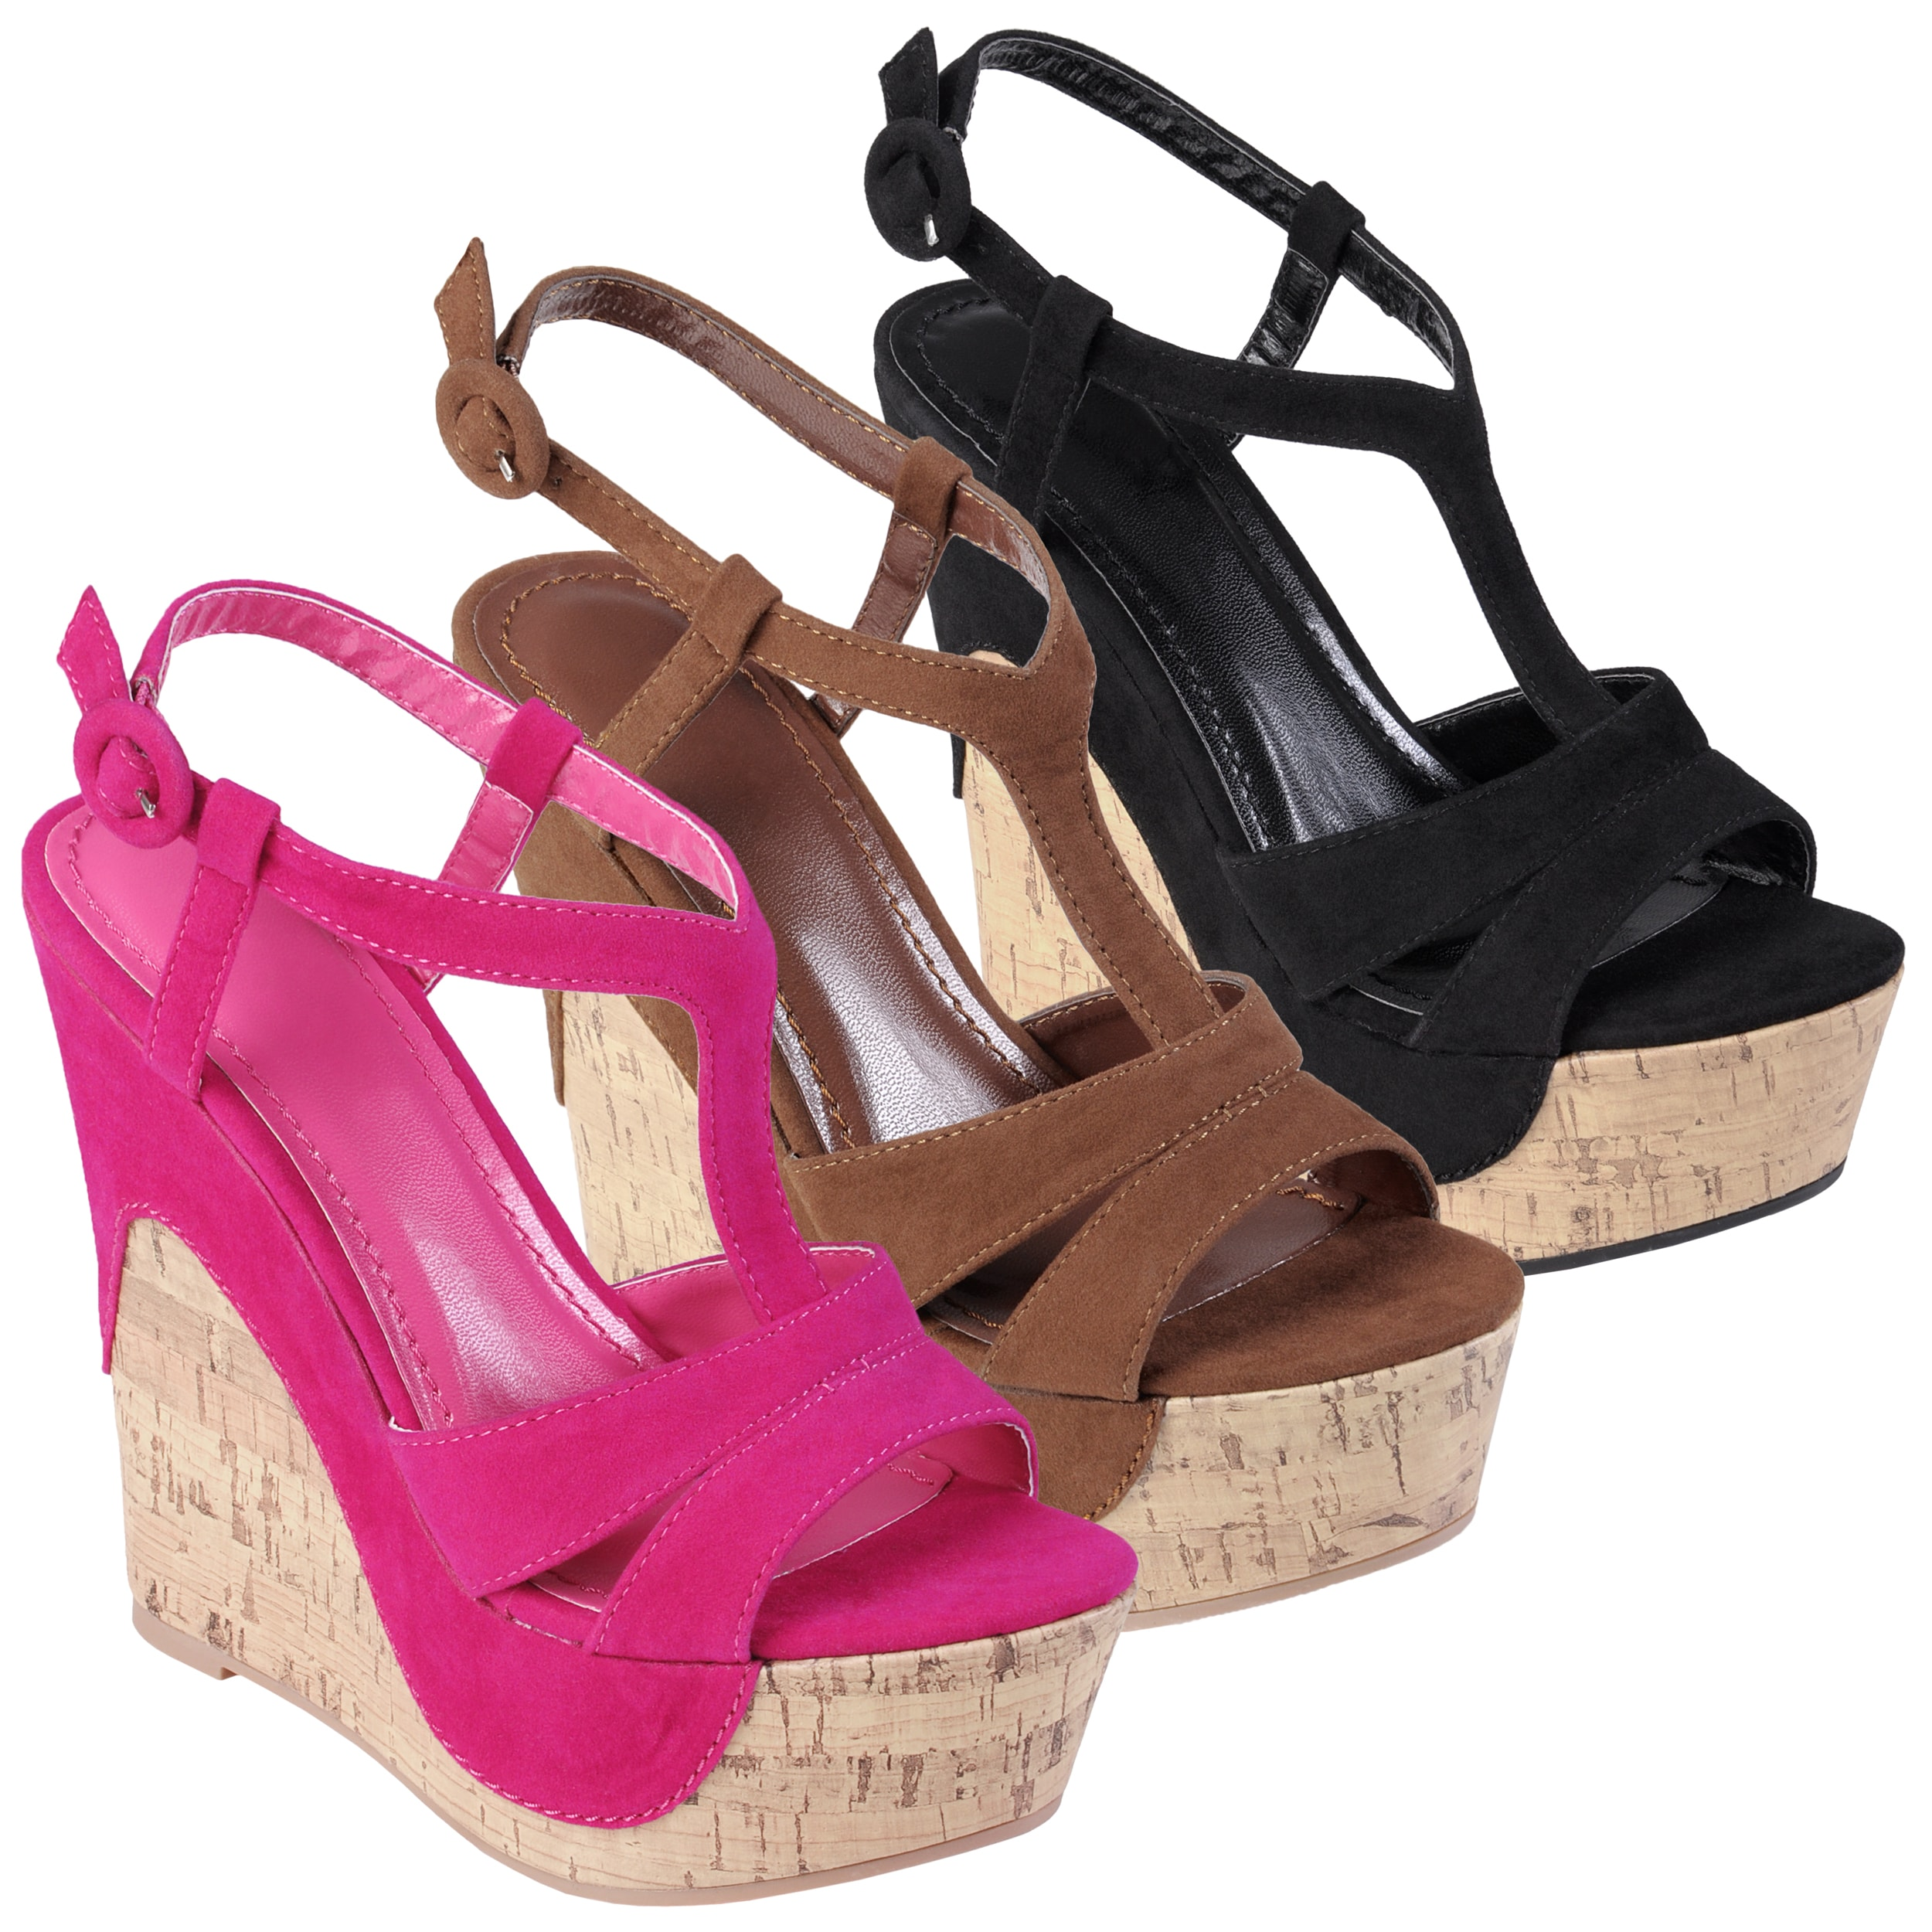 Hailey Jeans Co Women's 'PAXTON-12' Peep Toe T-Strap Wedges